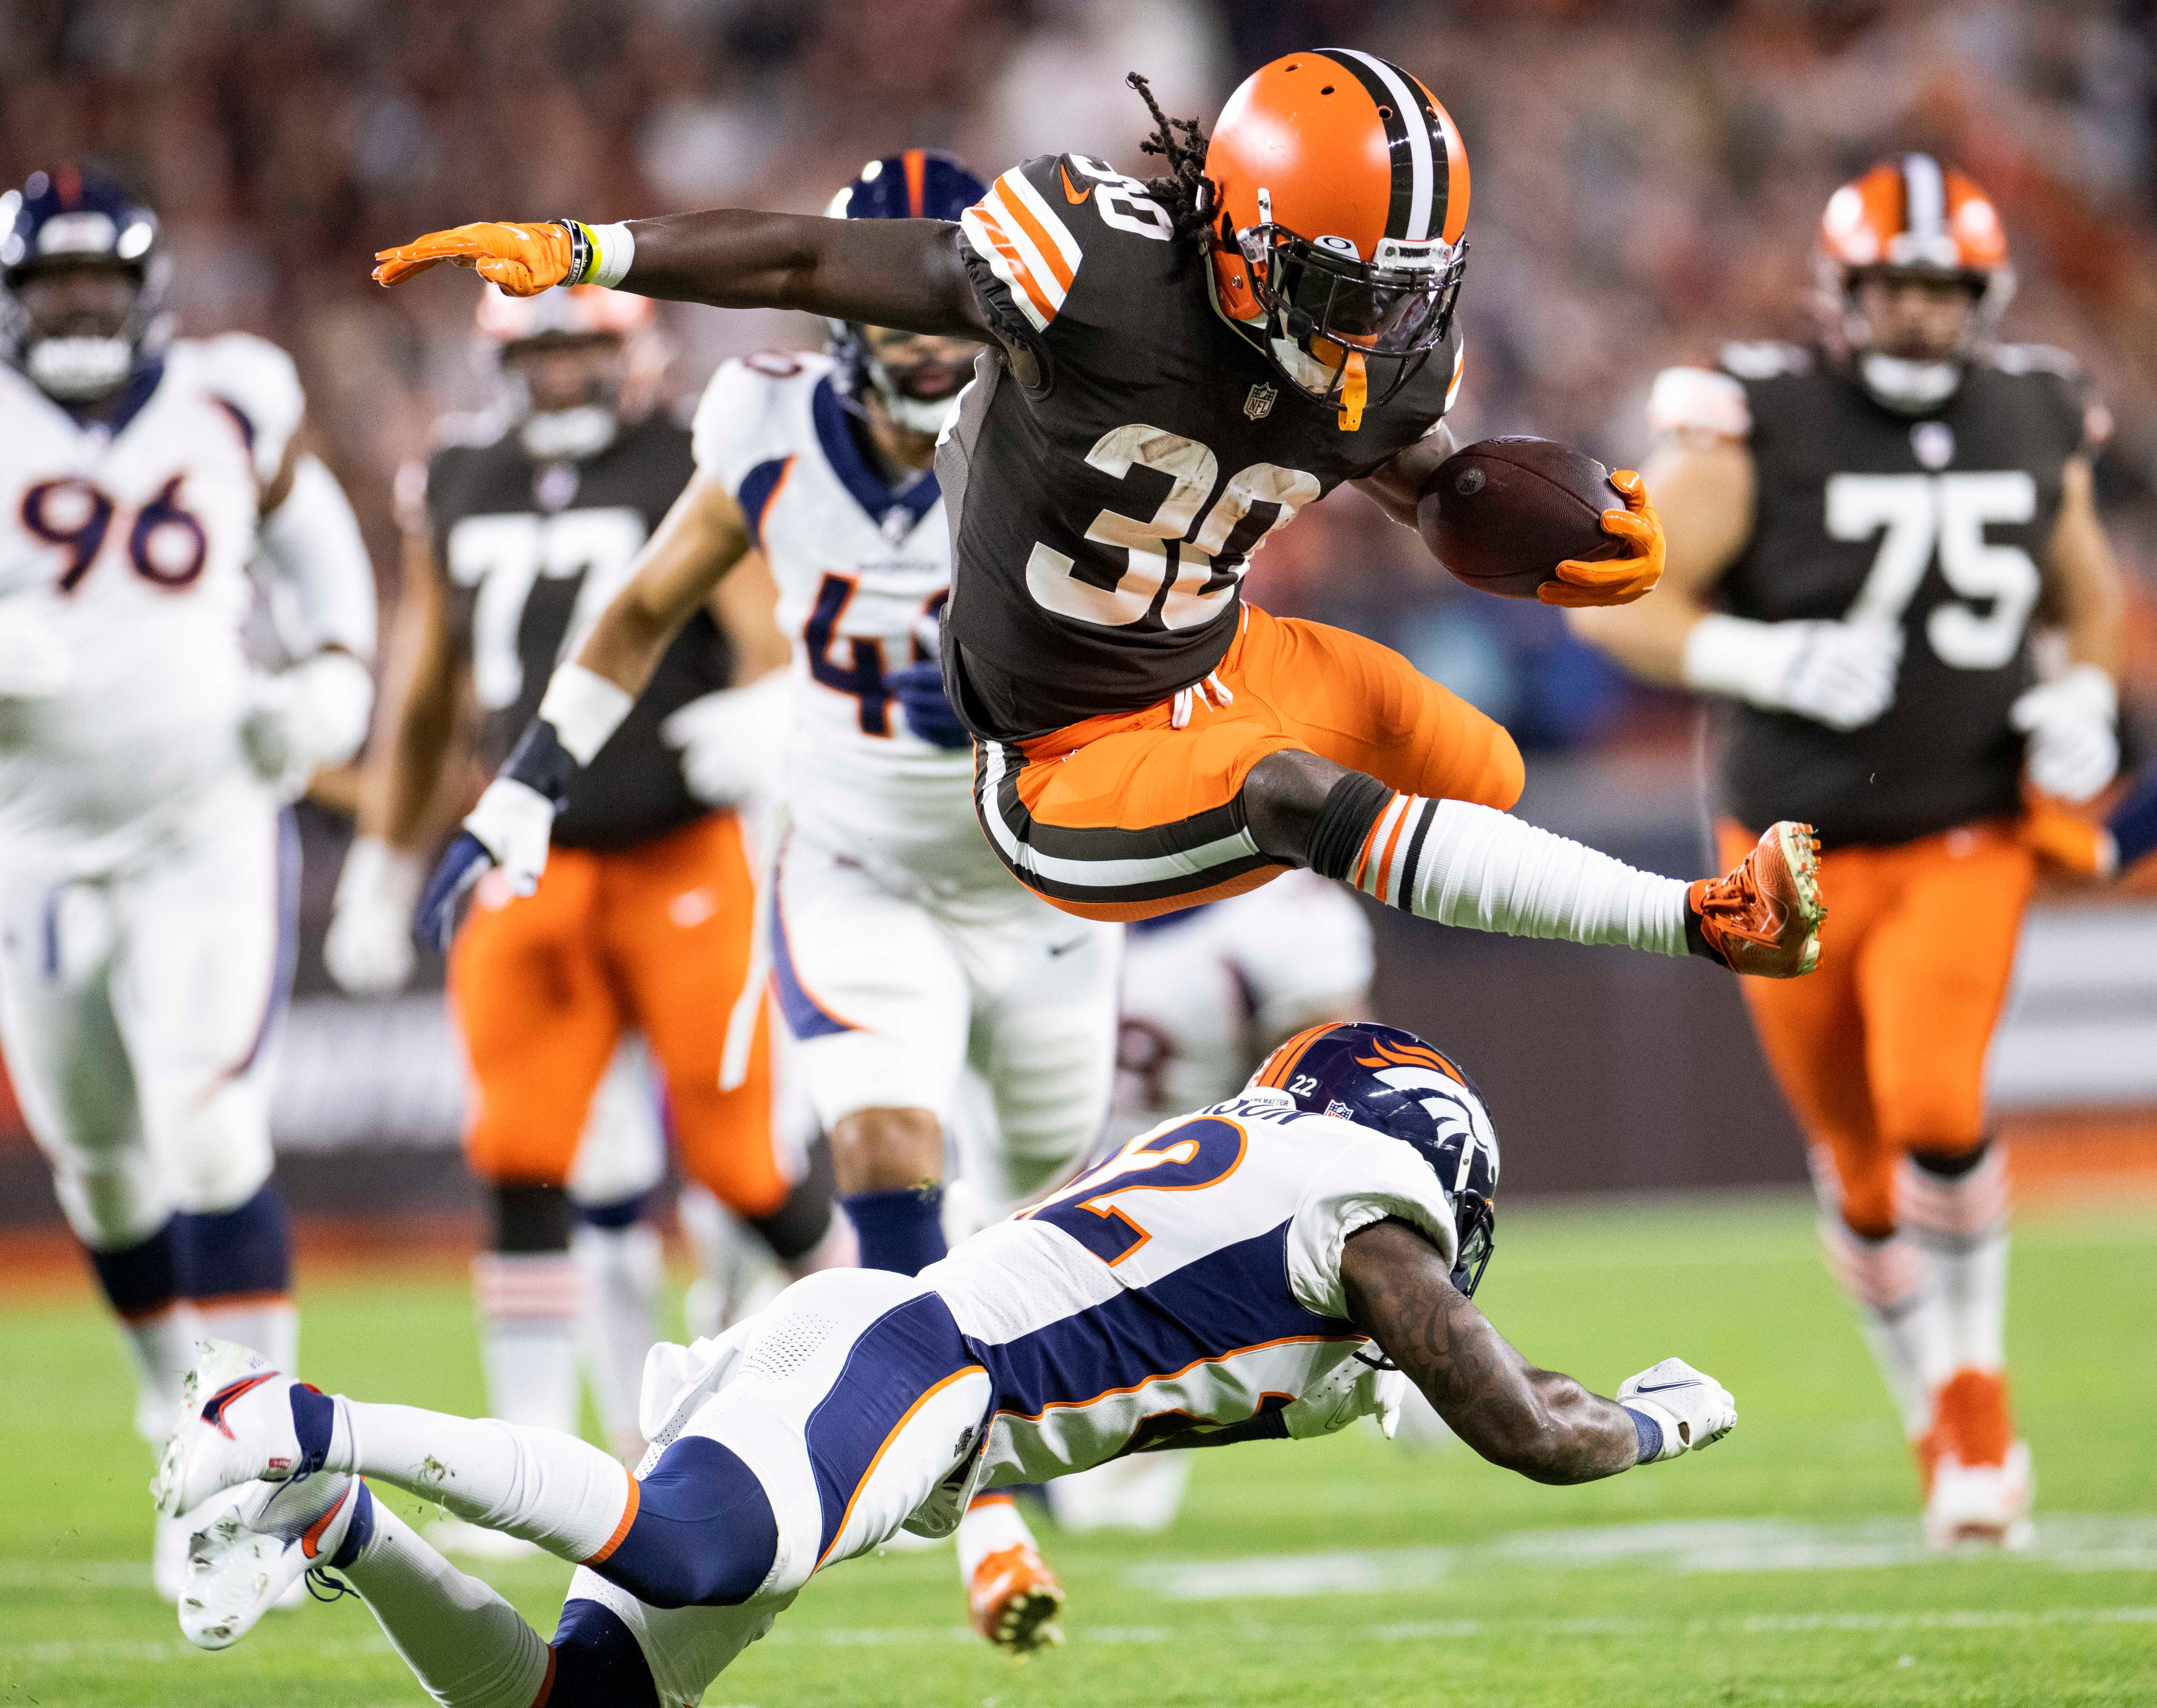 'That ain't nothing but God': D'Ernest Johnson epitomizes Browns culture with career night